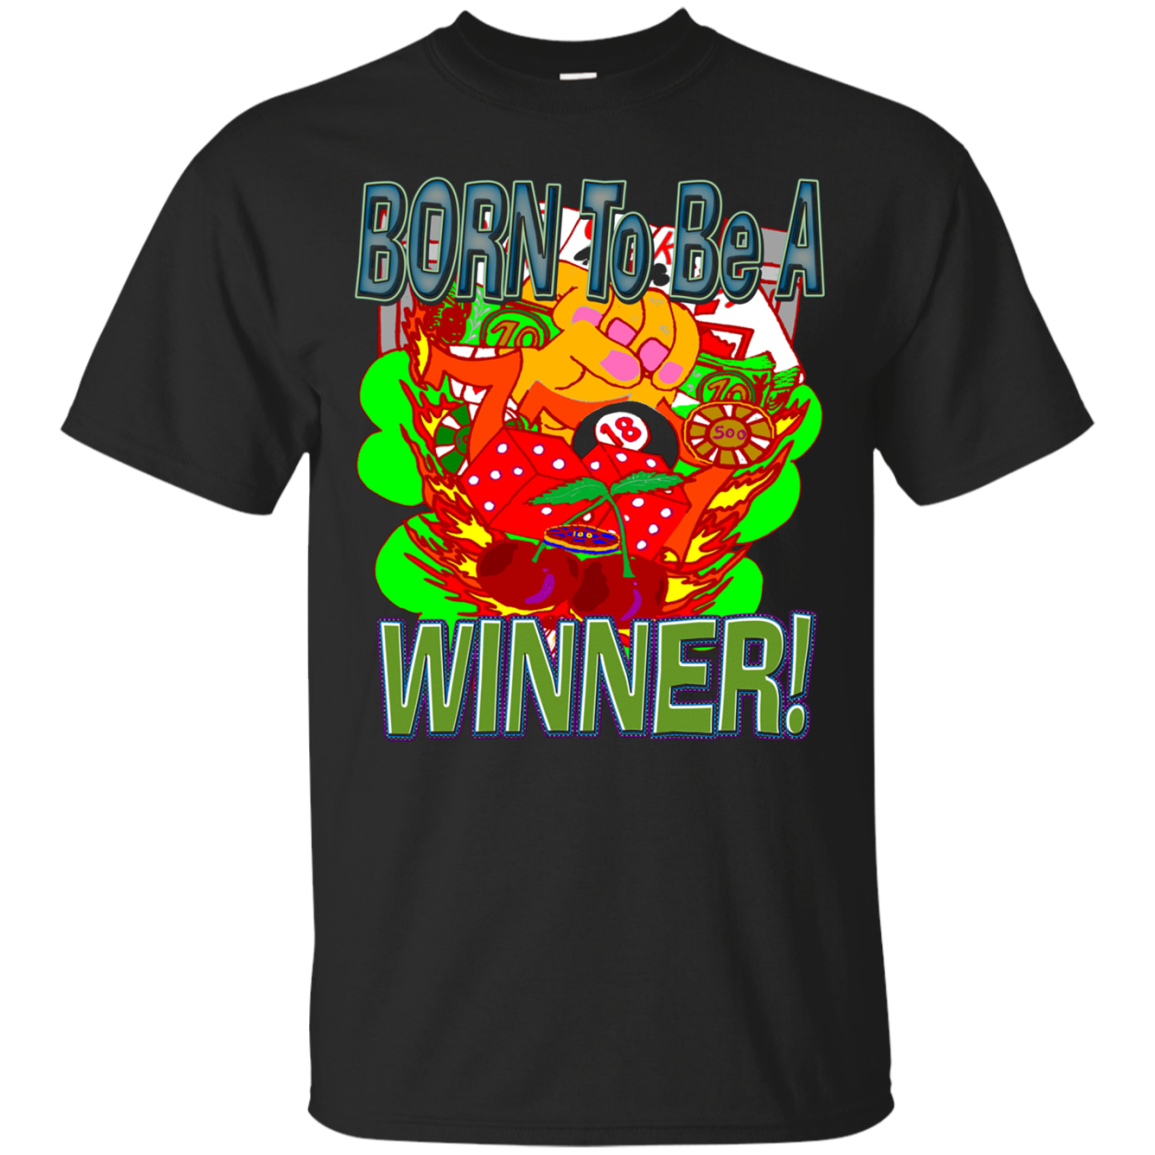 Funny Inspirational Born To Be Winner! Gambler T-Shirt